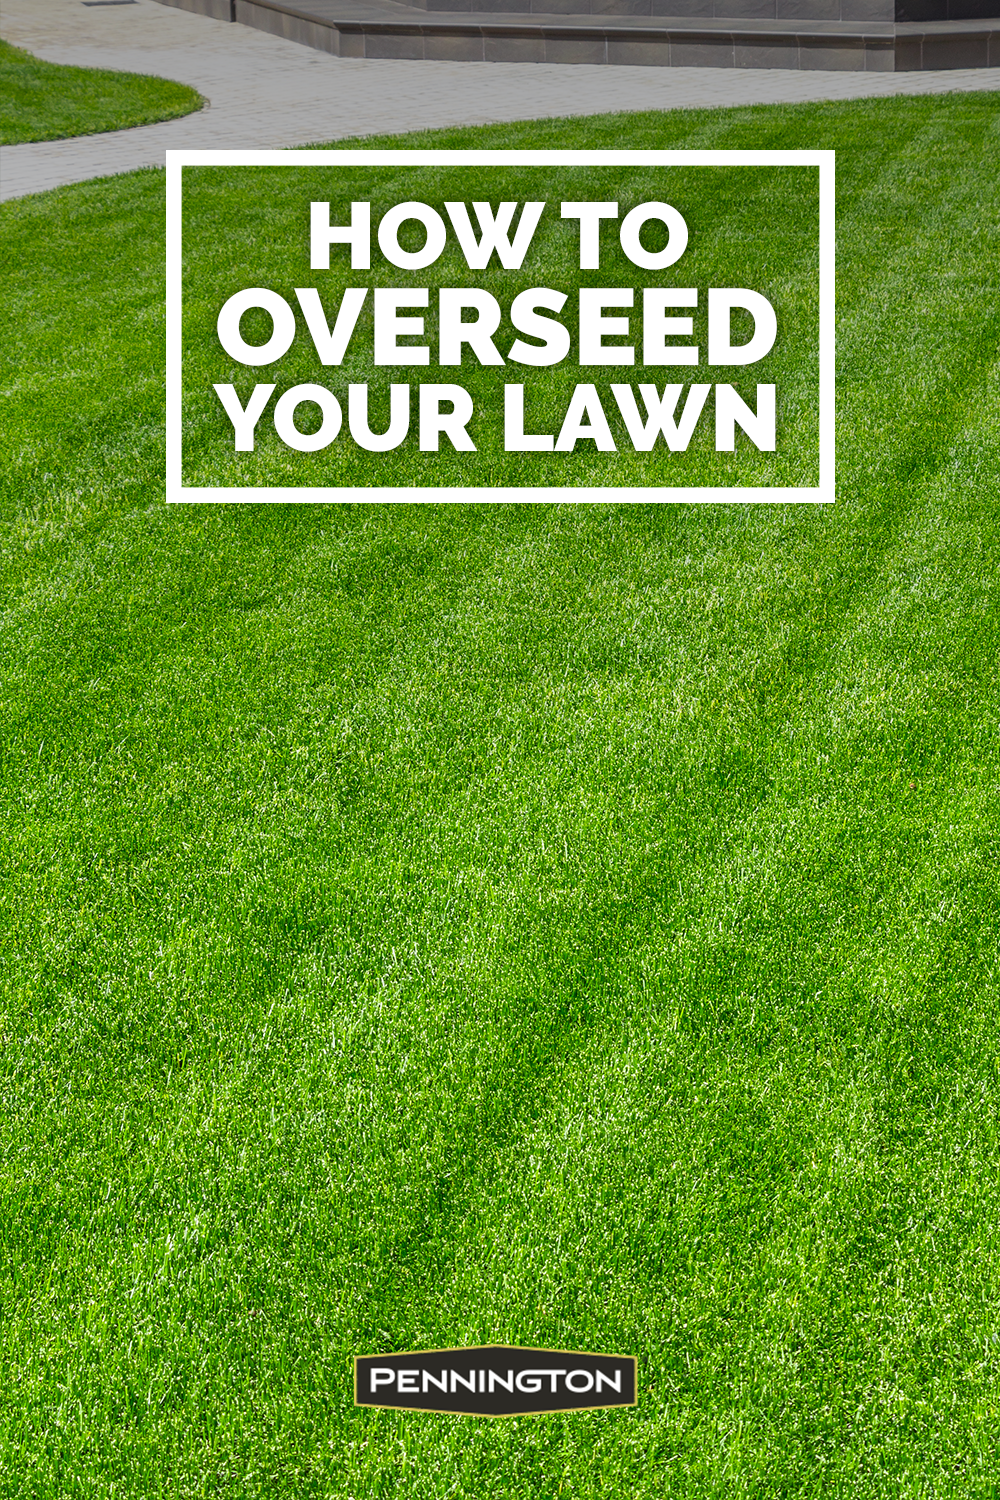 How To Overseed Or Reseed Your Lawn In 2020 Backyard Landscaping Designs Lawn And Landscape Garden Yard Ideas